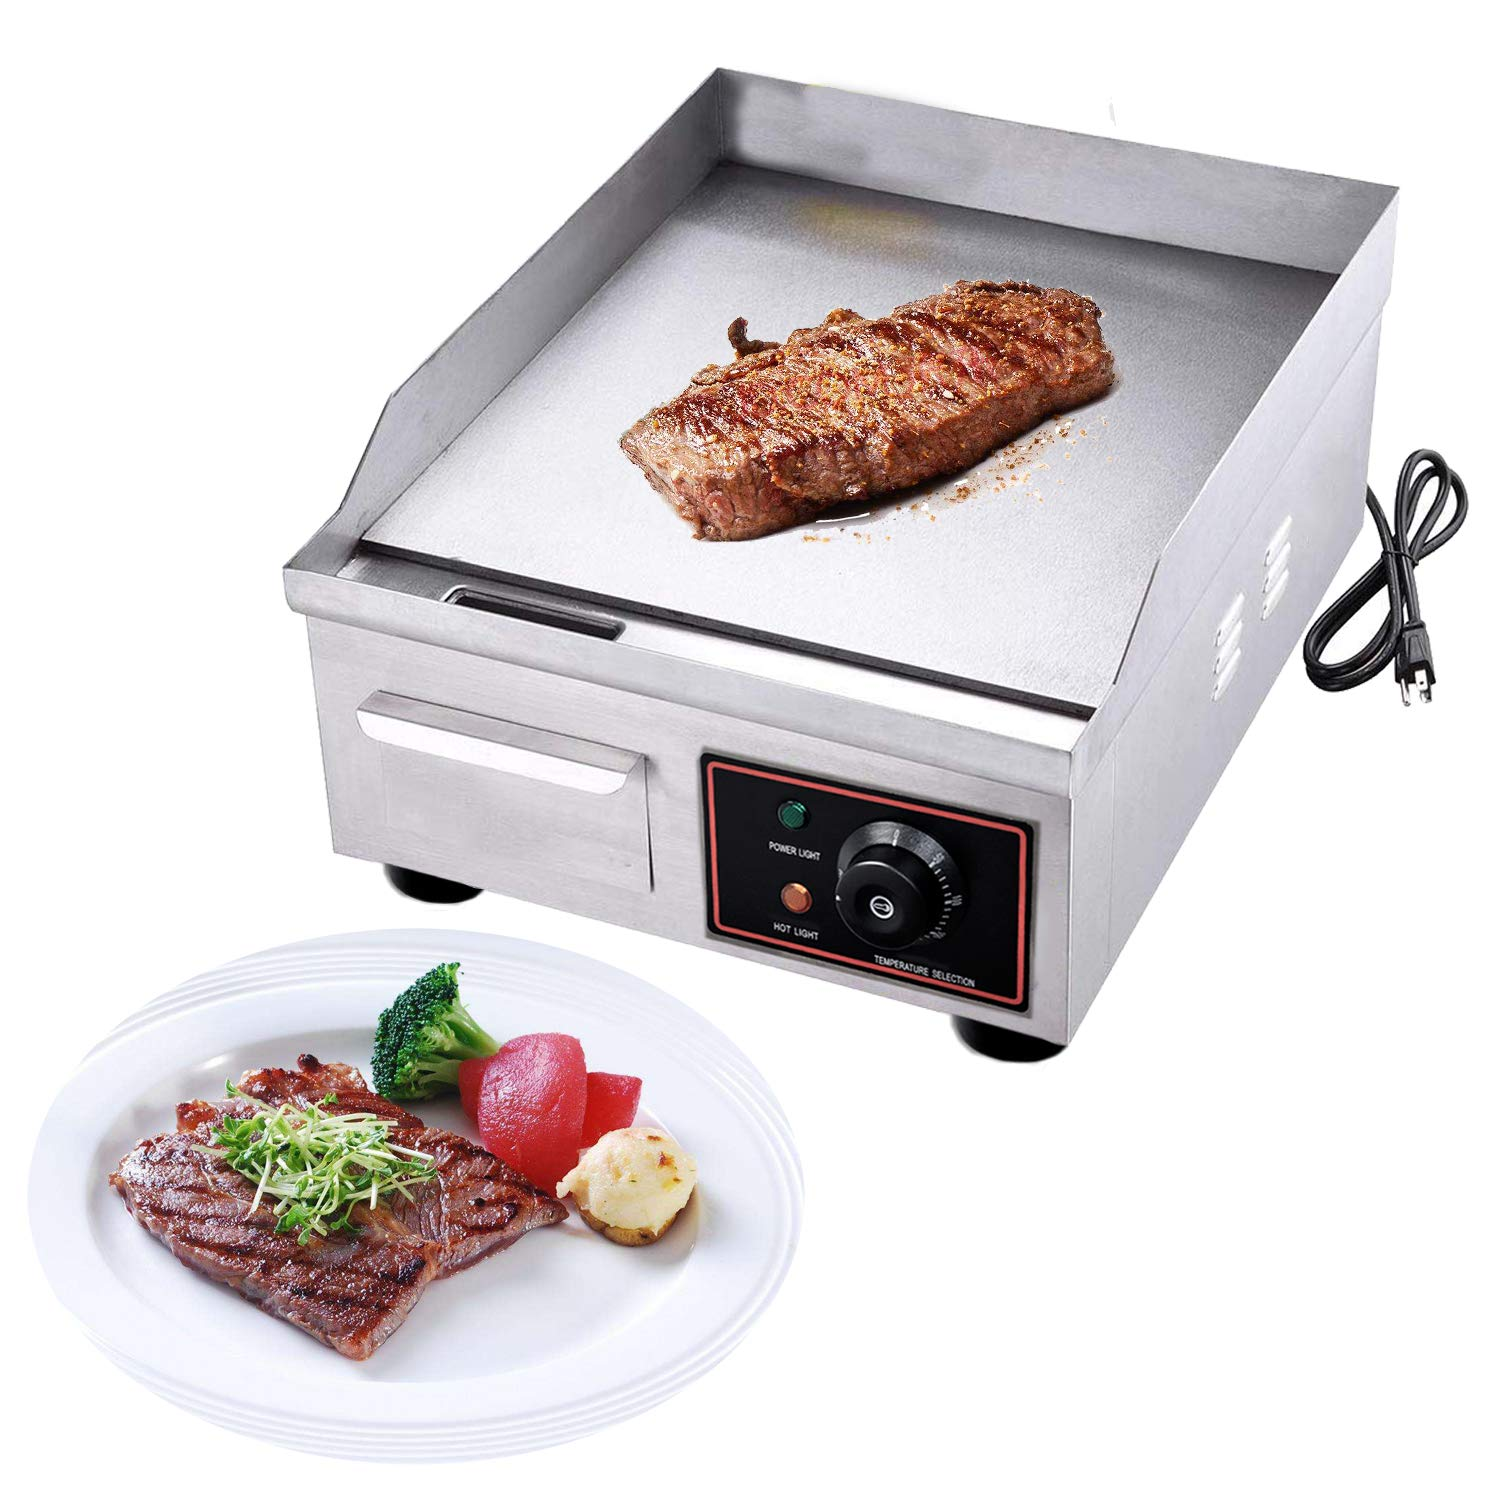 Proshopping 1500W 14'' Commercial Electric Countertop Griddle Grill, Stainless Steel Restaurant Grill, Tabletop Flat Grill, with Adjustable Temperture Control, 110V